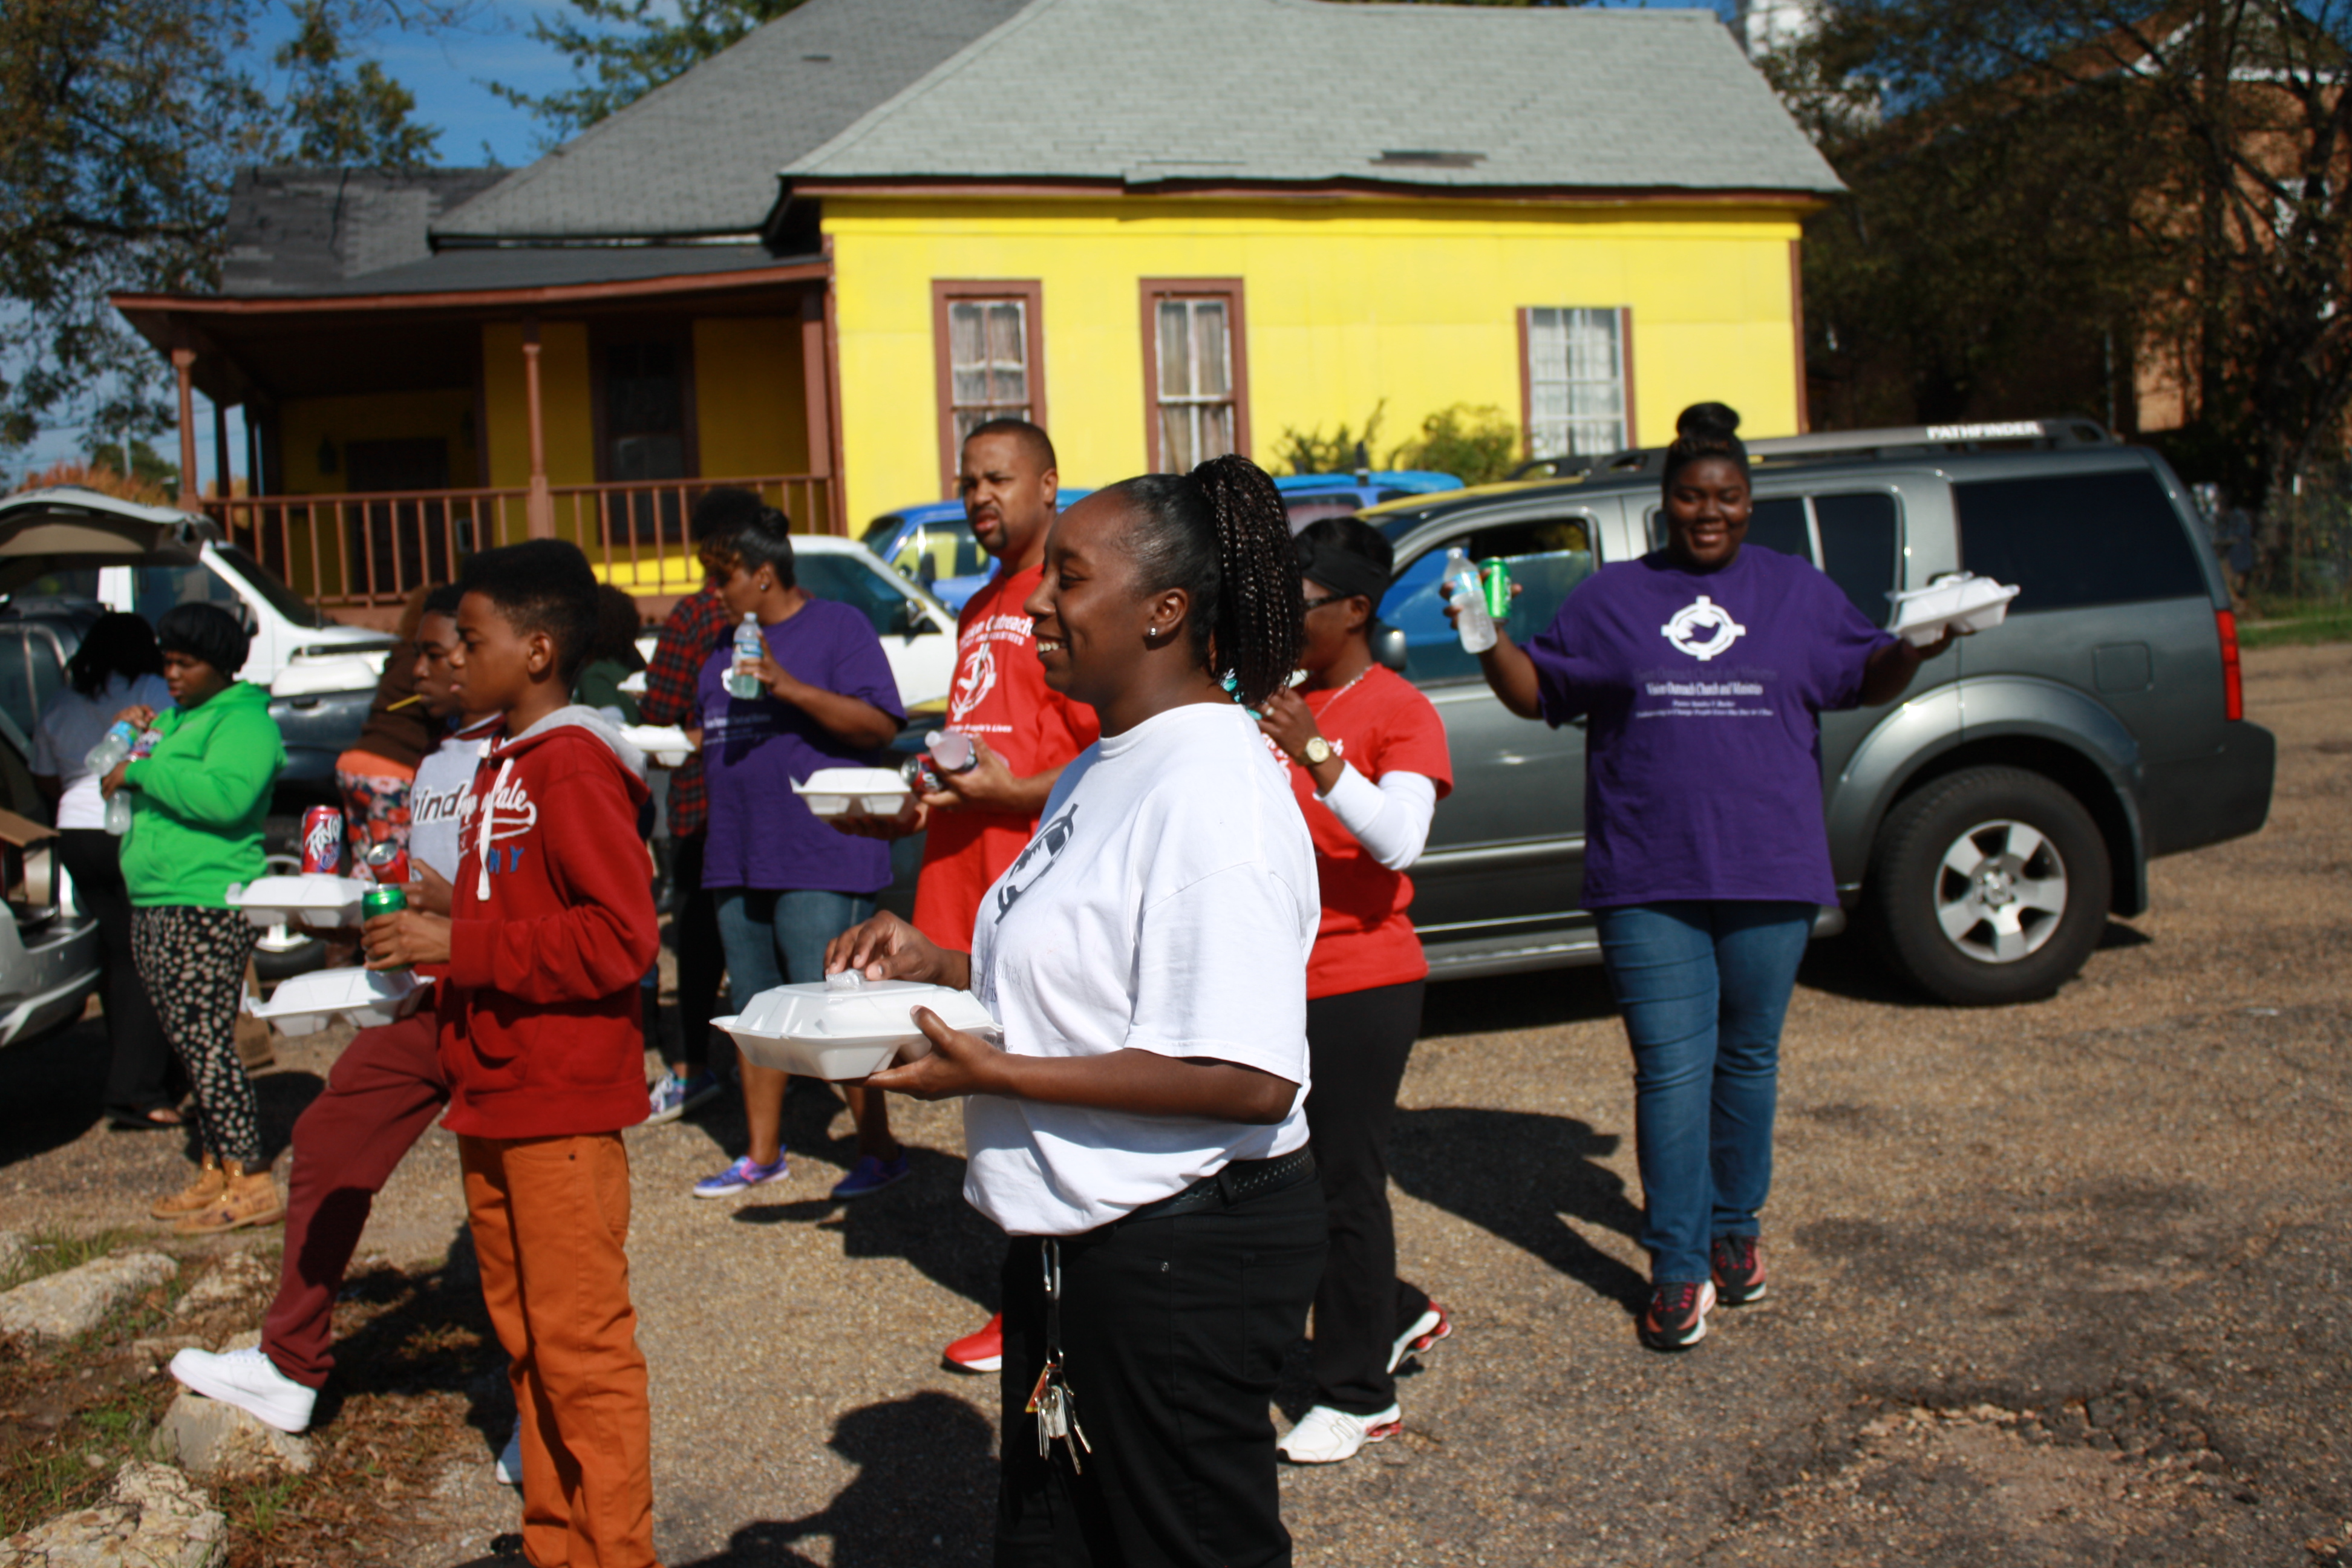 Members of Vision Outreach Church and Ministries await individuals to give meals to on Rose Street in Jackson. Photos by Shanderia K. Posey